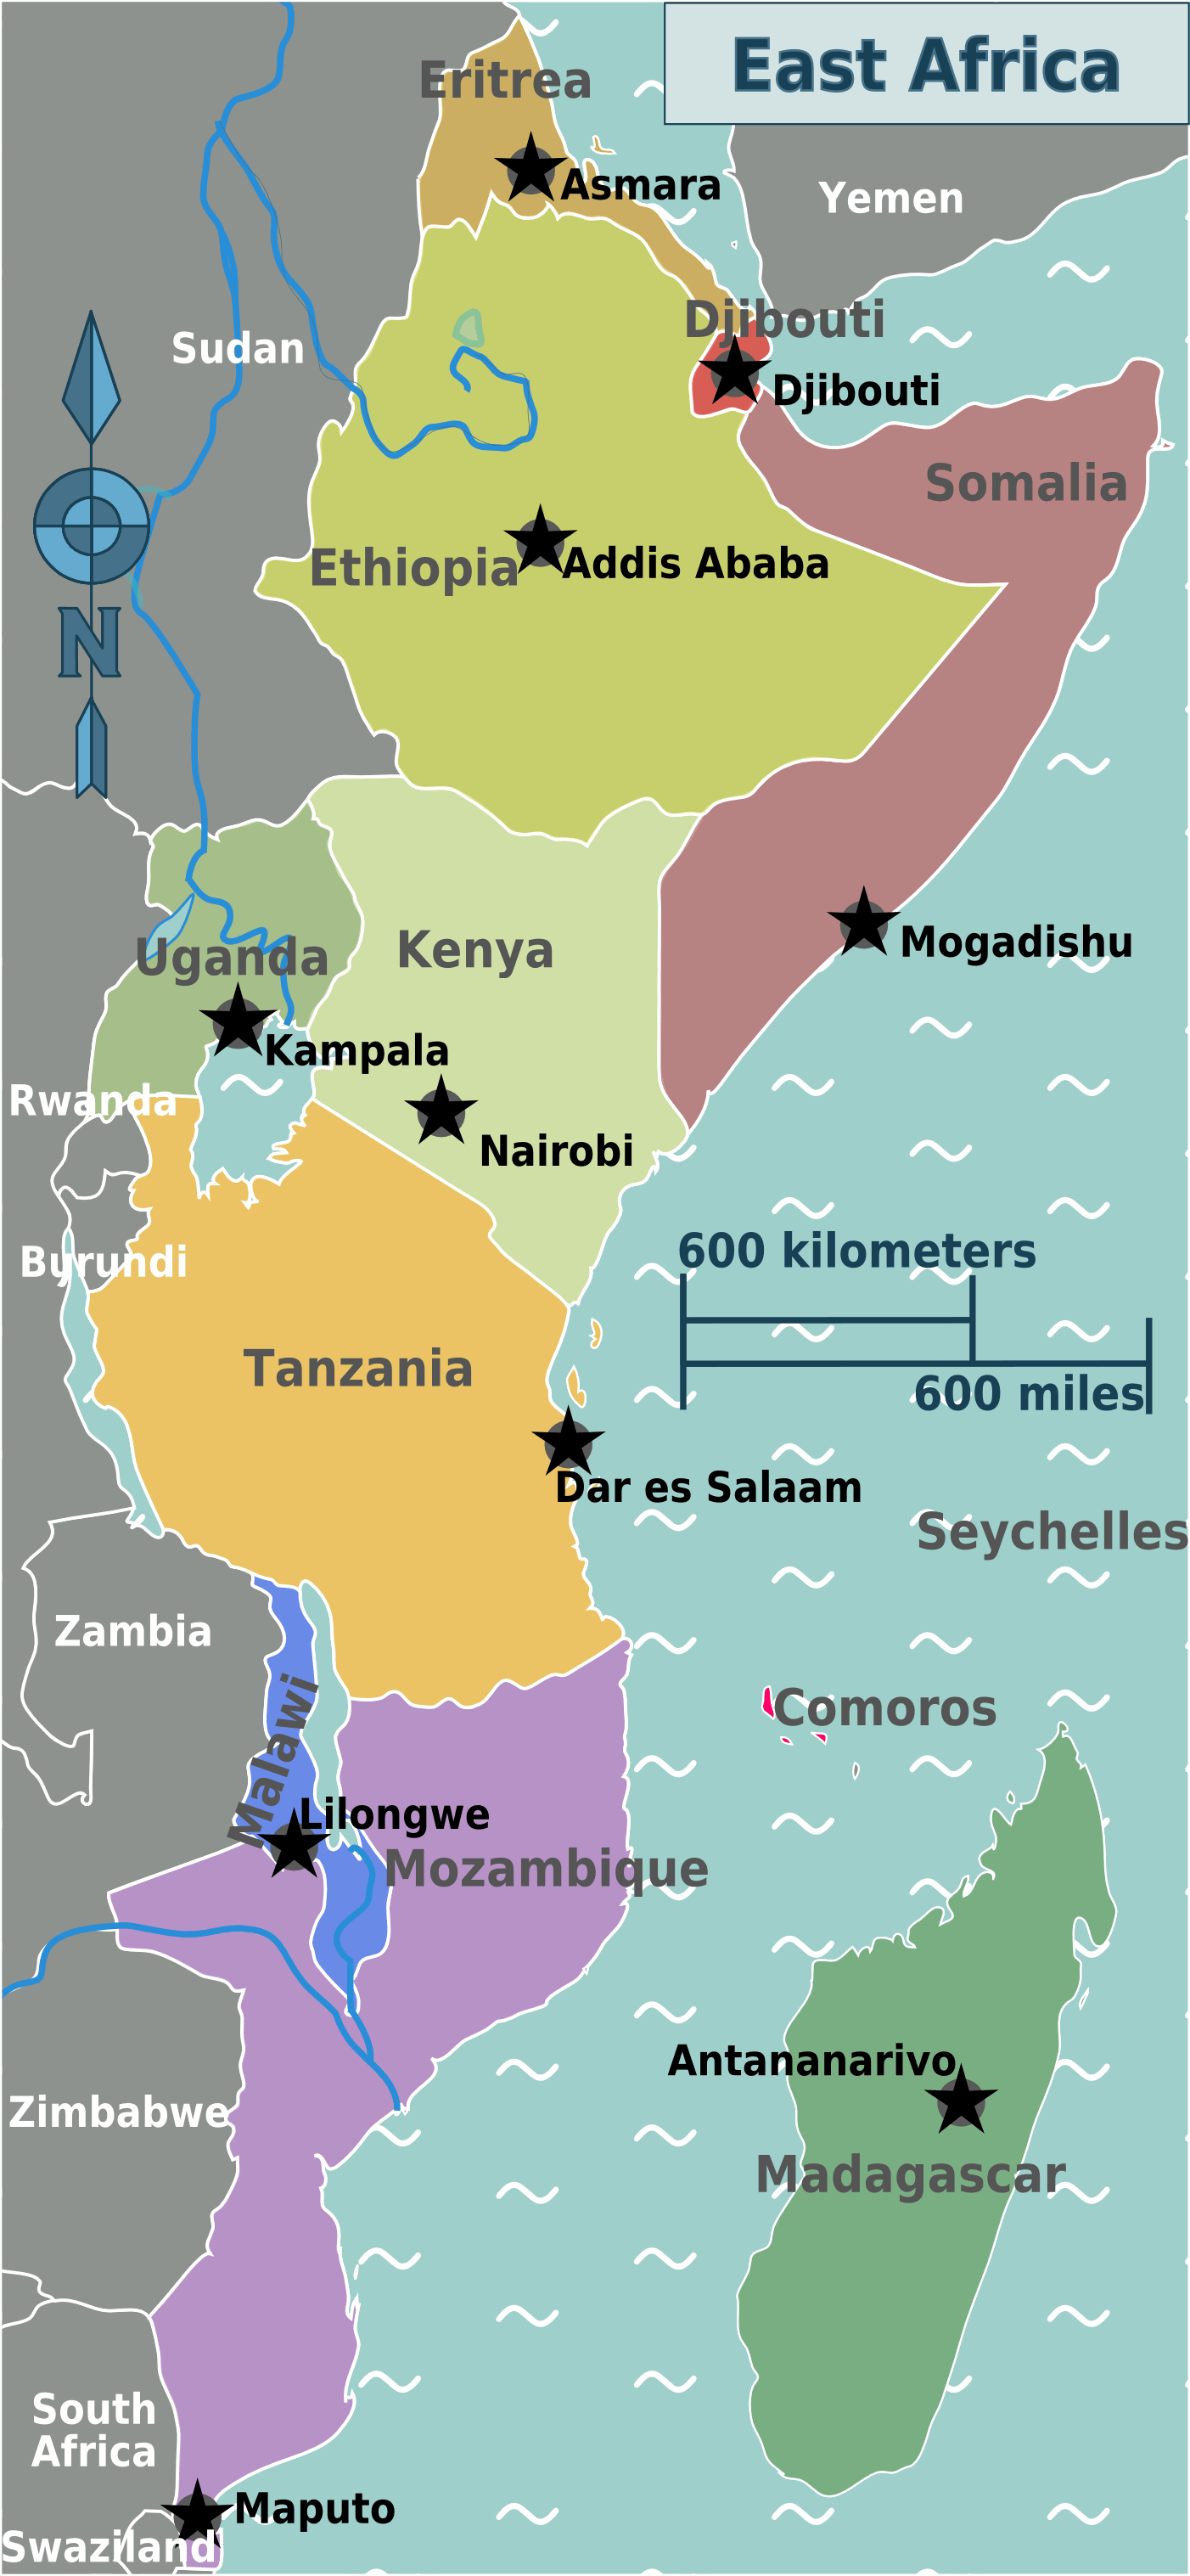 East Africa Regions Map • Mapsof.net